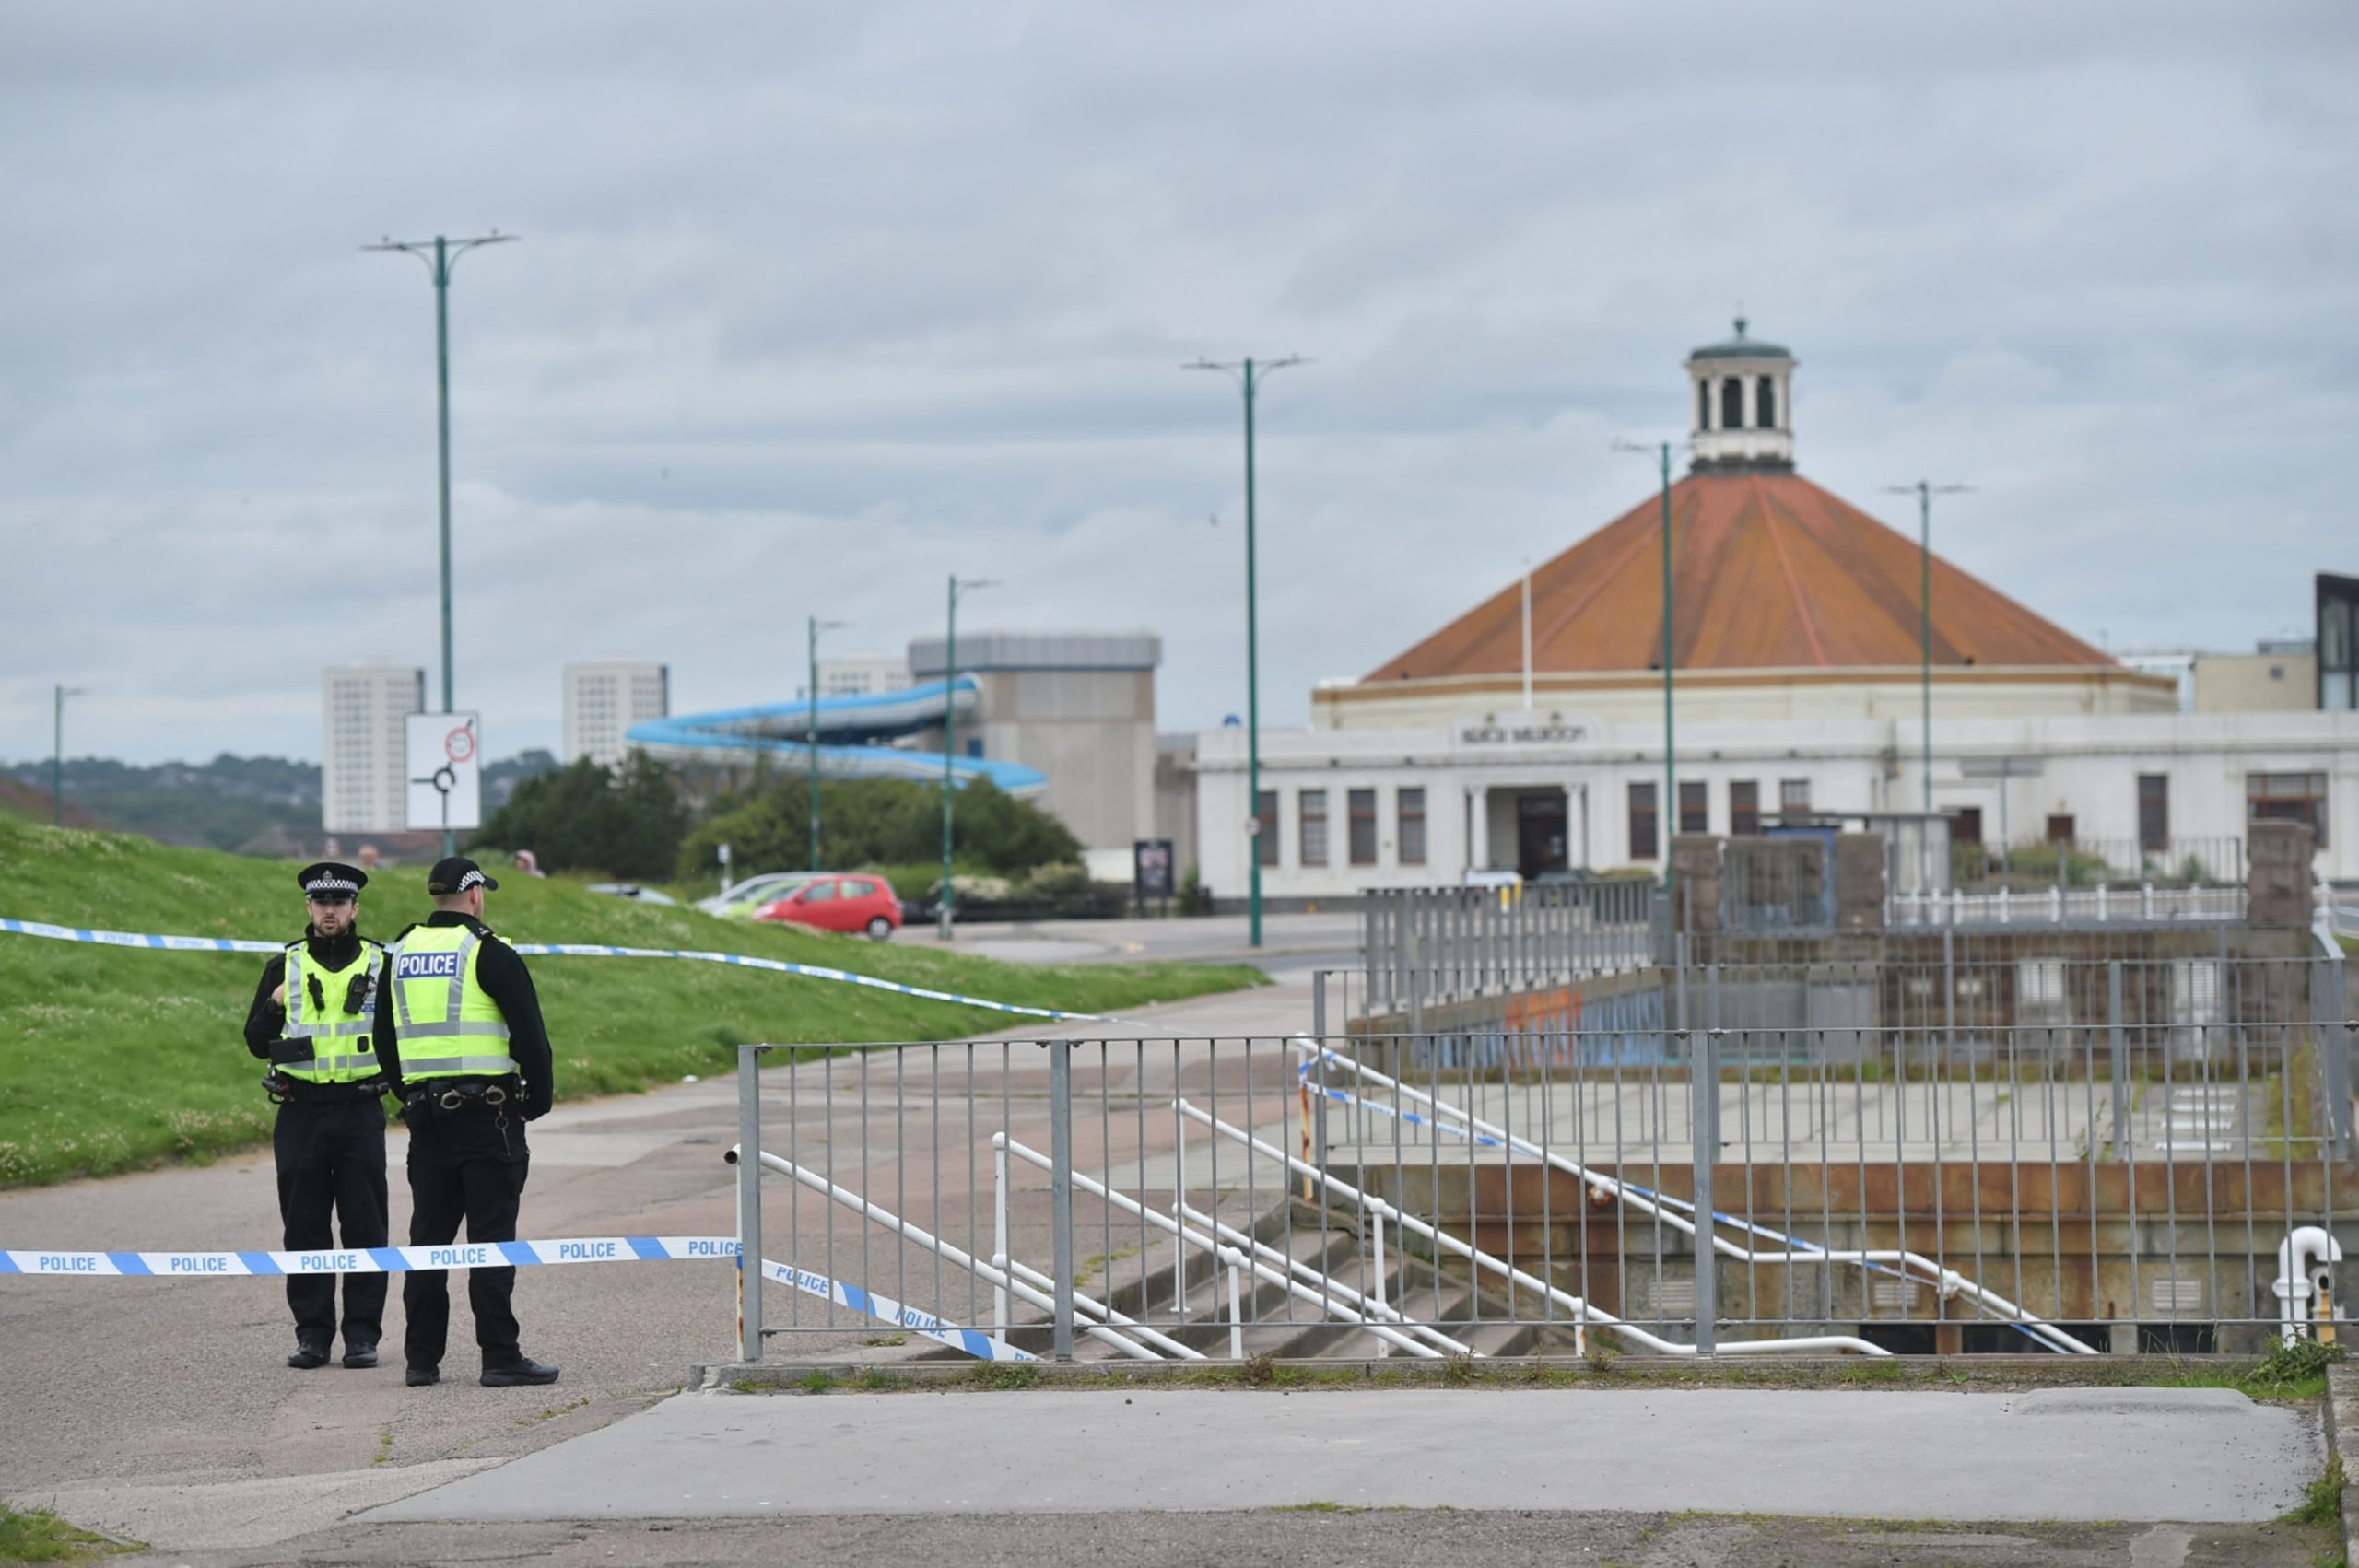 Police have cordoned off a section of Aberdeen beach. Picture by Scott Baxter